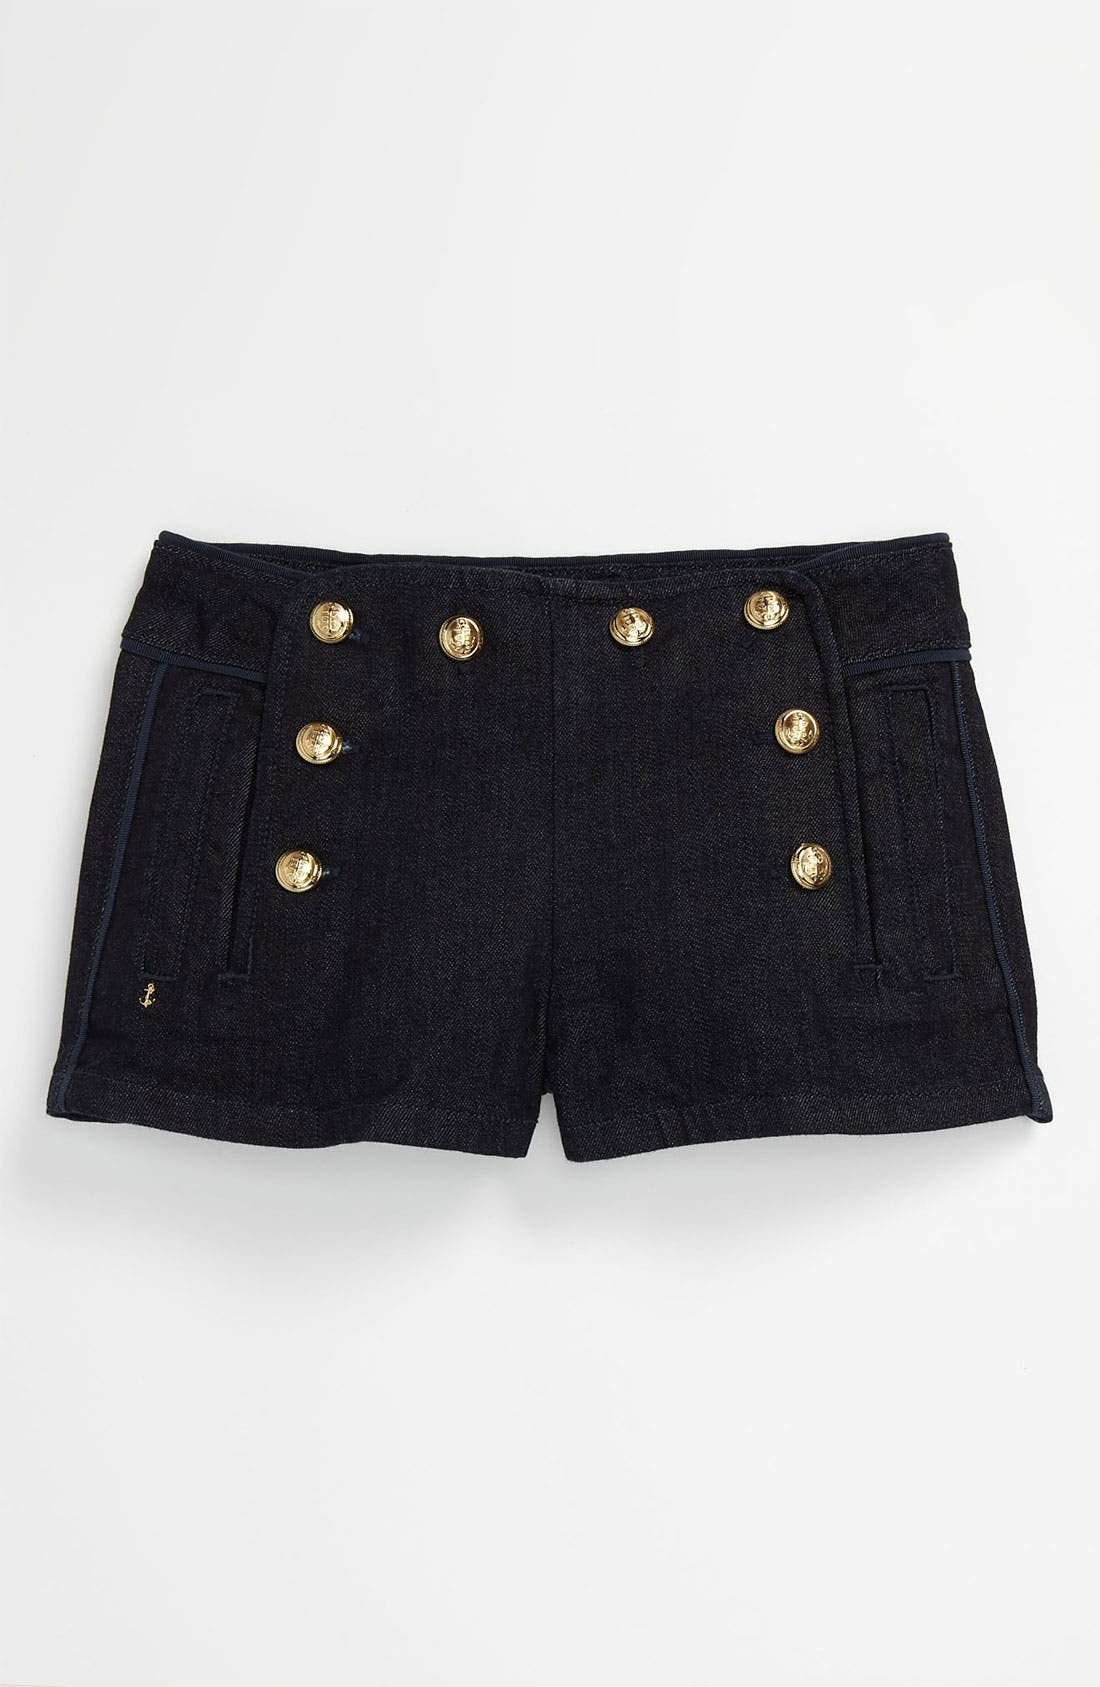 Alternate Image 1 Selected - Juicy Couture Sailor Shorts (Little Girls & Big Girls)